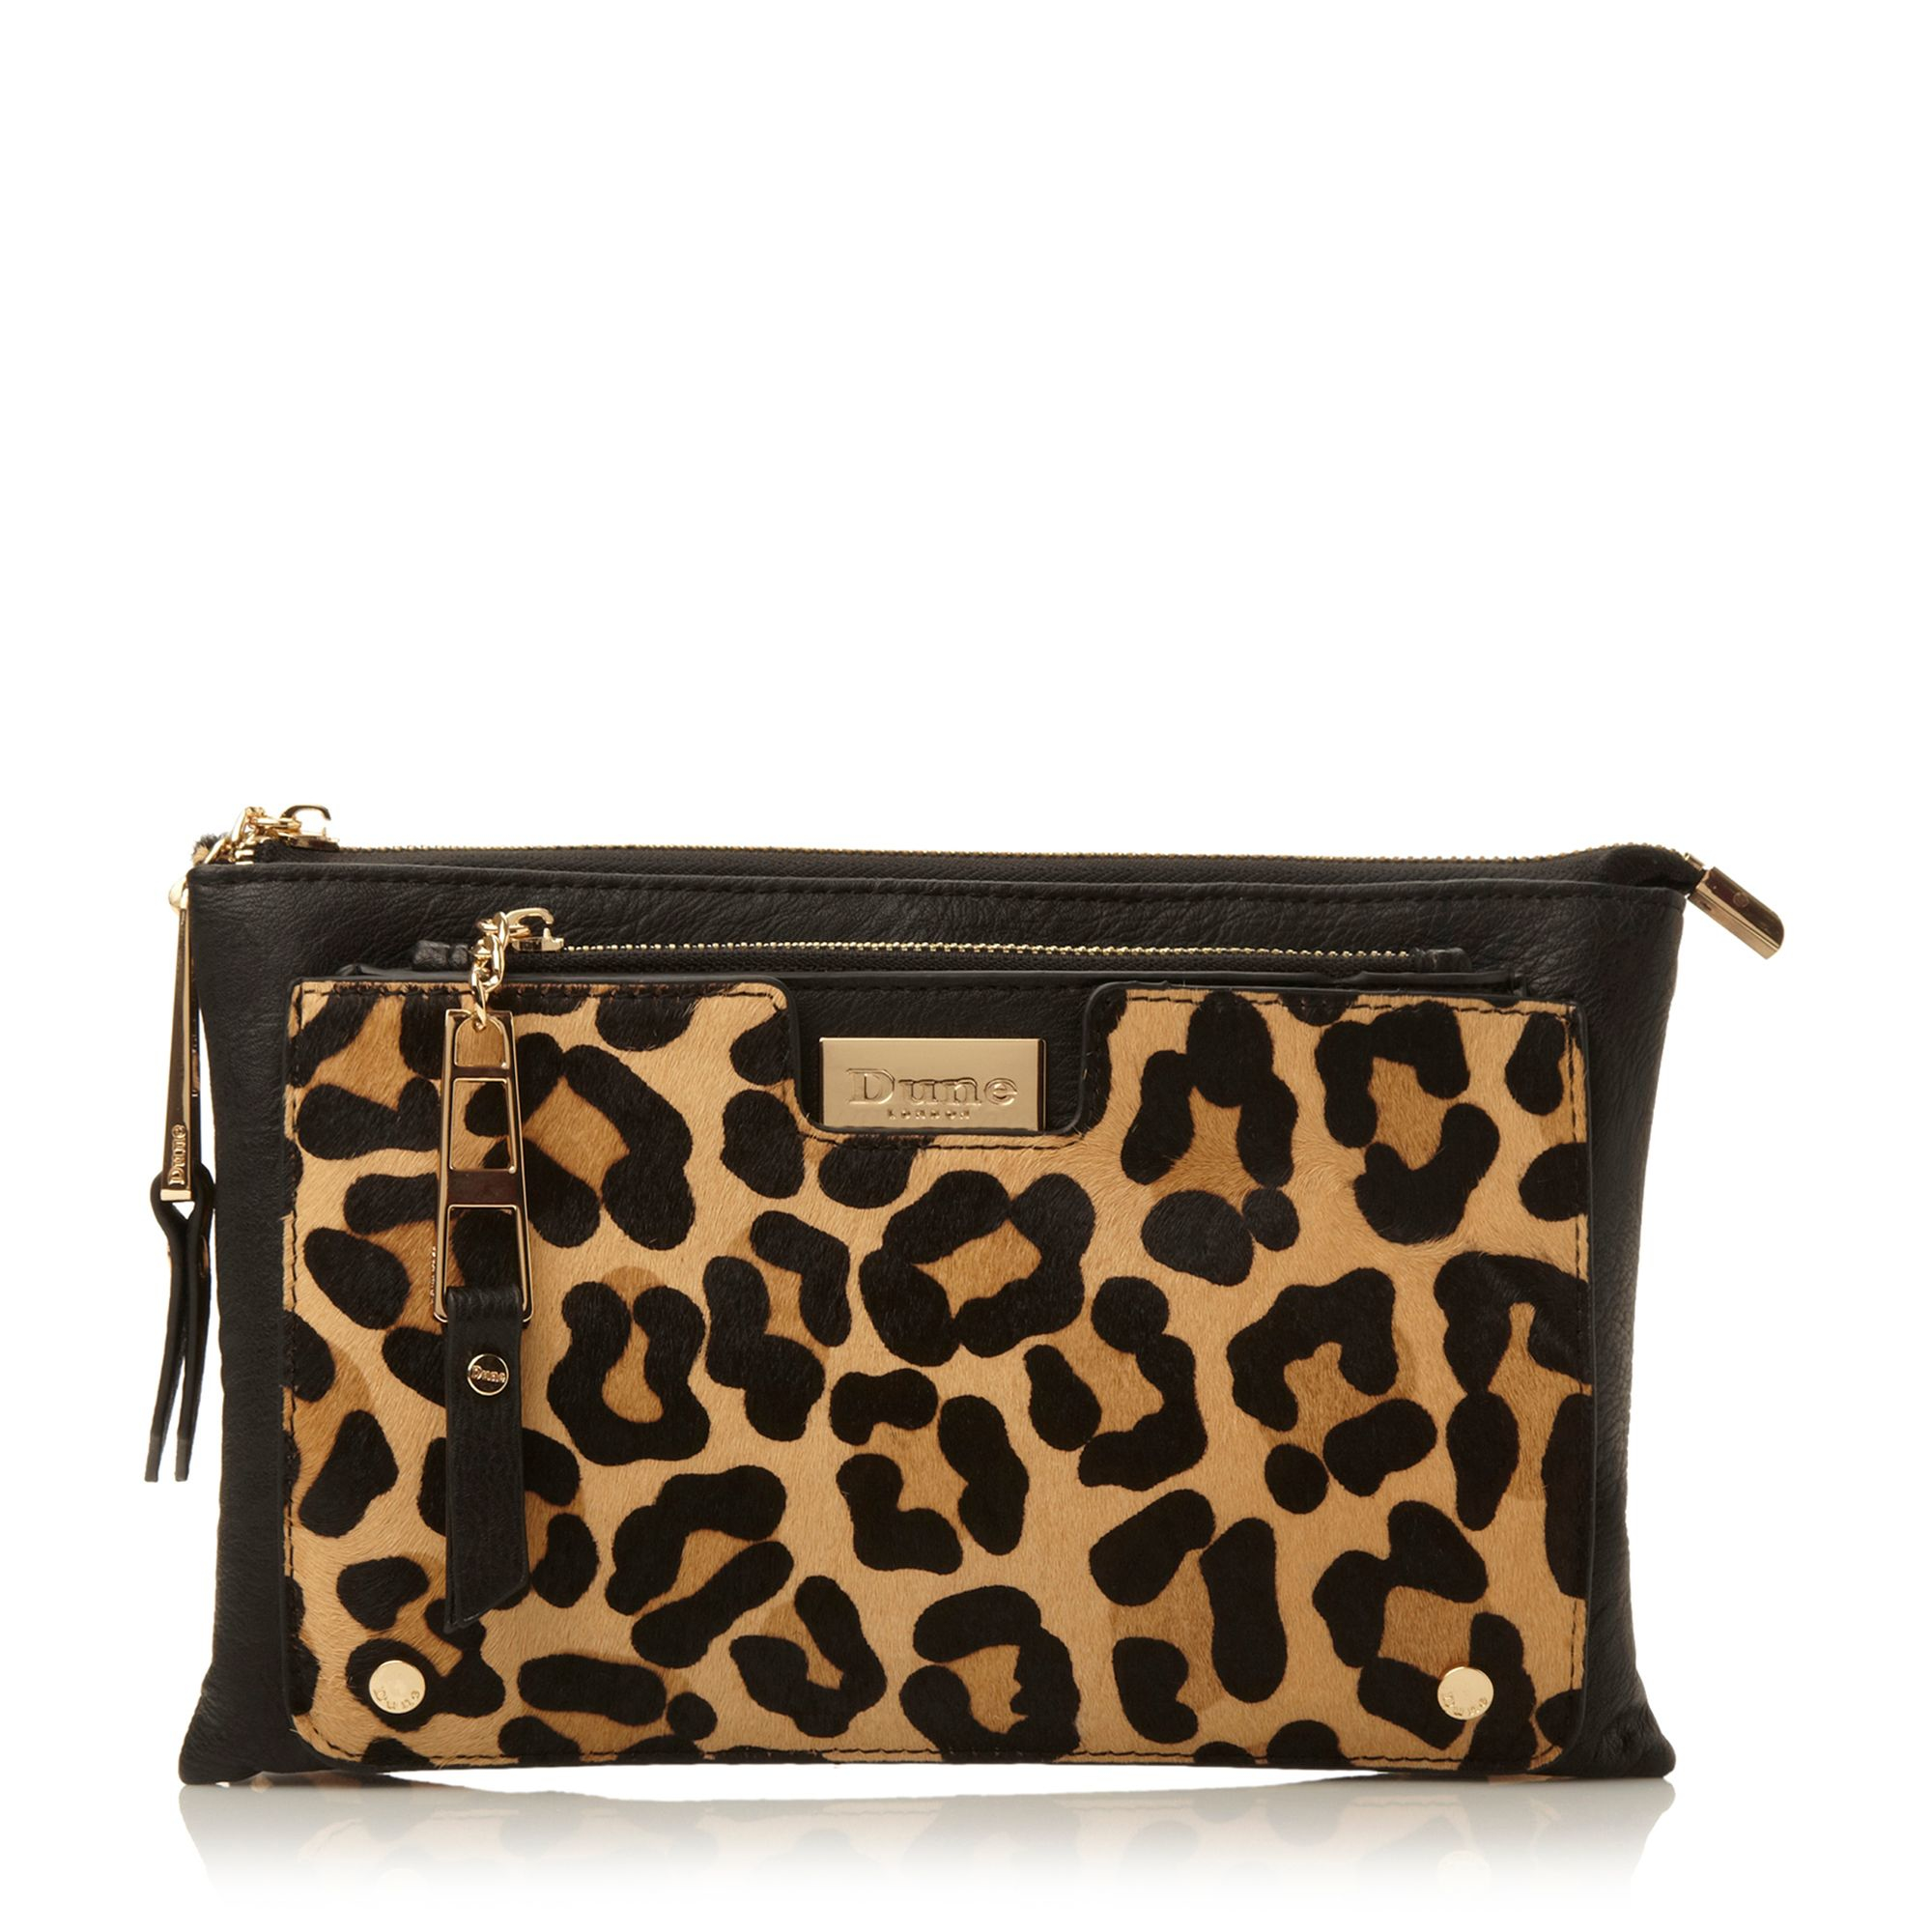 6f9edbe1b1cf Leopard Print Handbags Dune   Stanford Center for Opportunity Policy ...